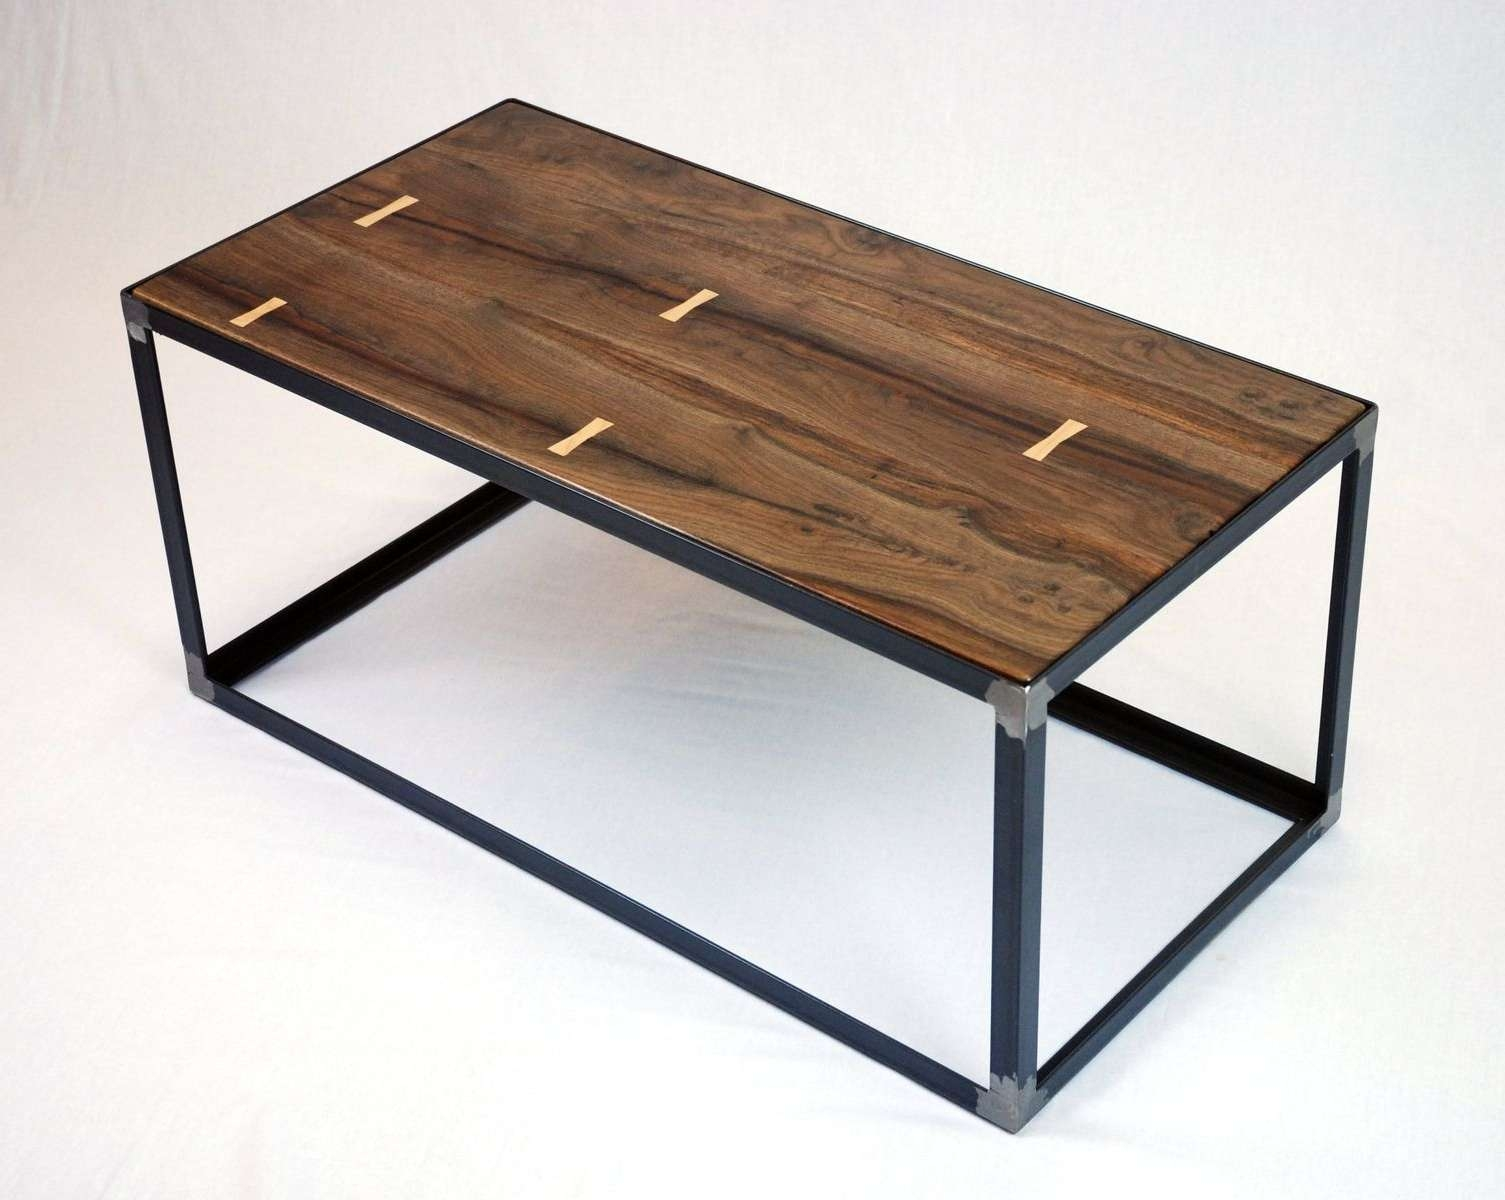 Hand Crafted Salvaged Black Walnut Industrial Coffee Table Within Popular Industrial Coffee Tables (View 9 of 20)